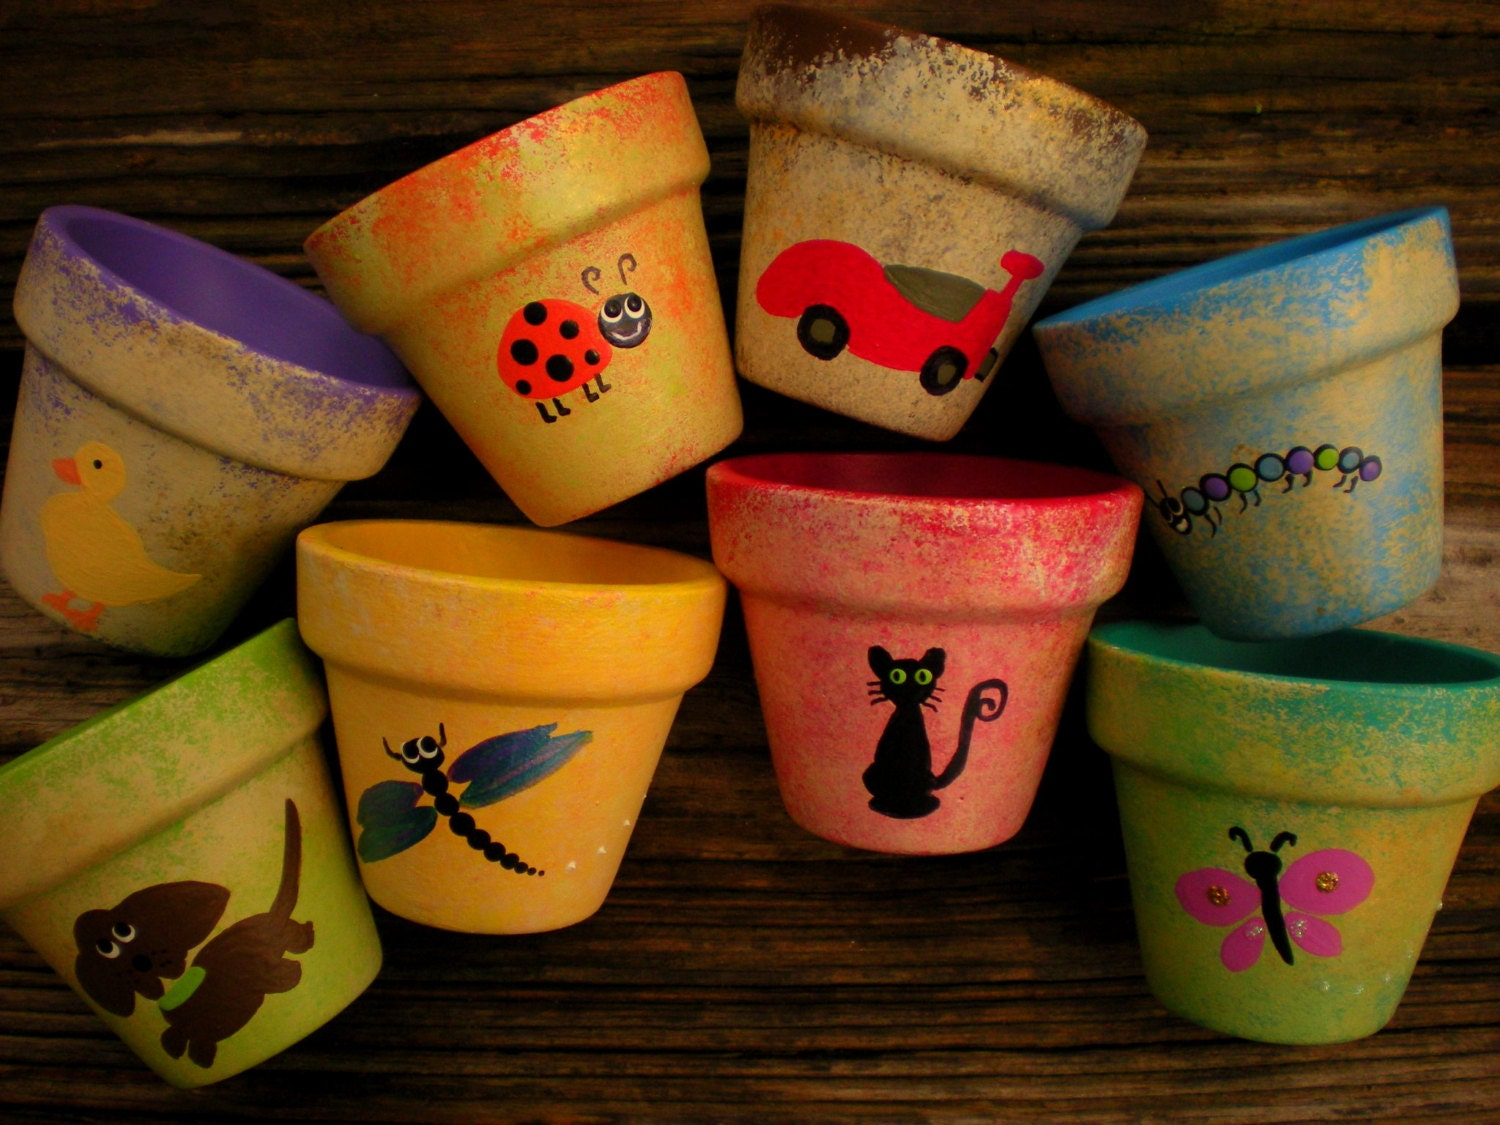 Small flower pots hand painted pots kids party favors for Small clay flower pots